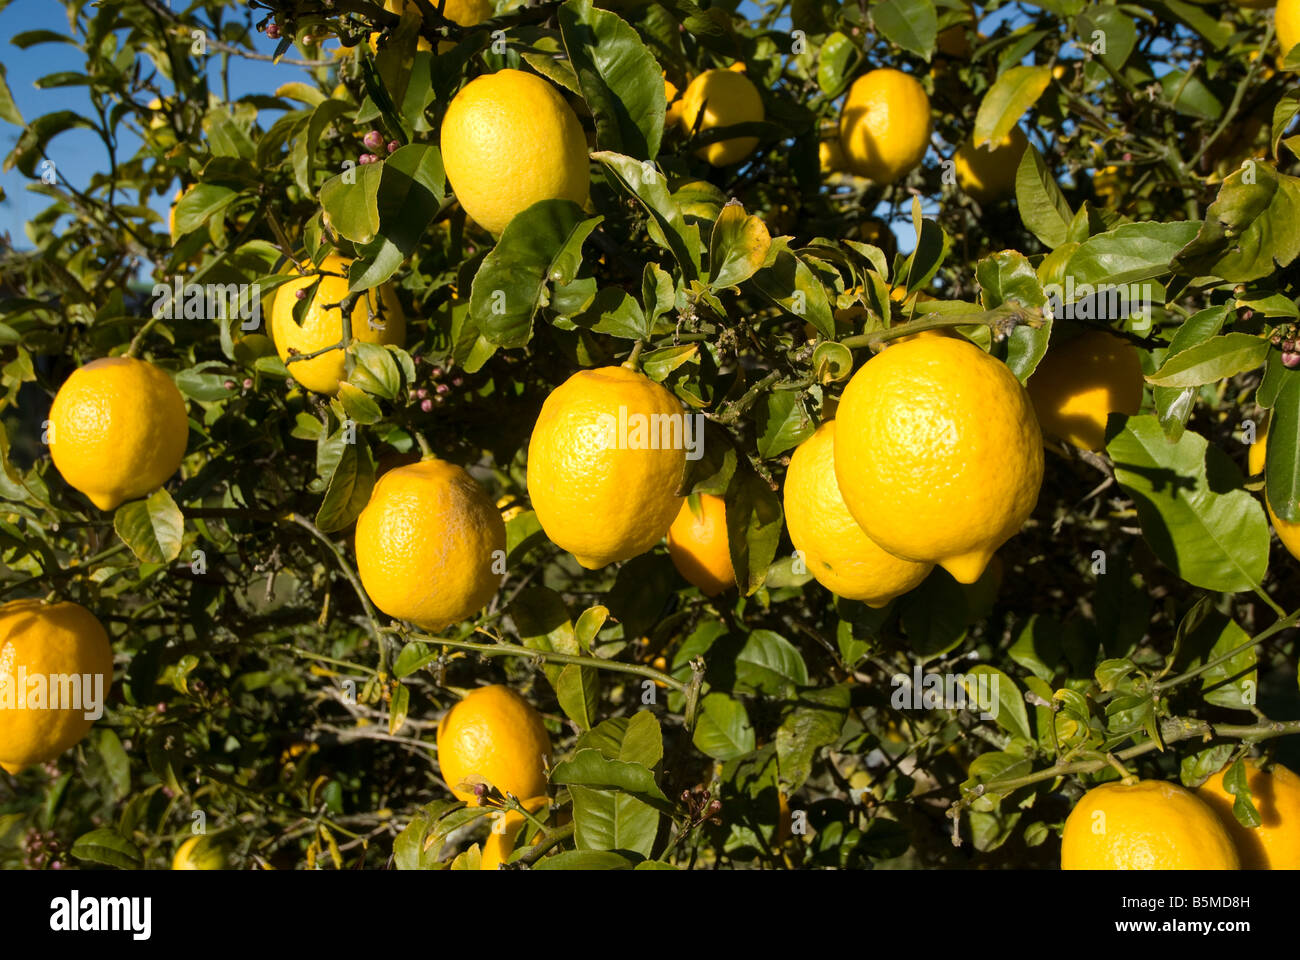 Lemons on a tree in Tolaga Bay, New-Zealand. - Stock Image